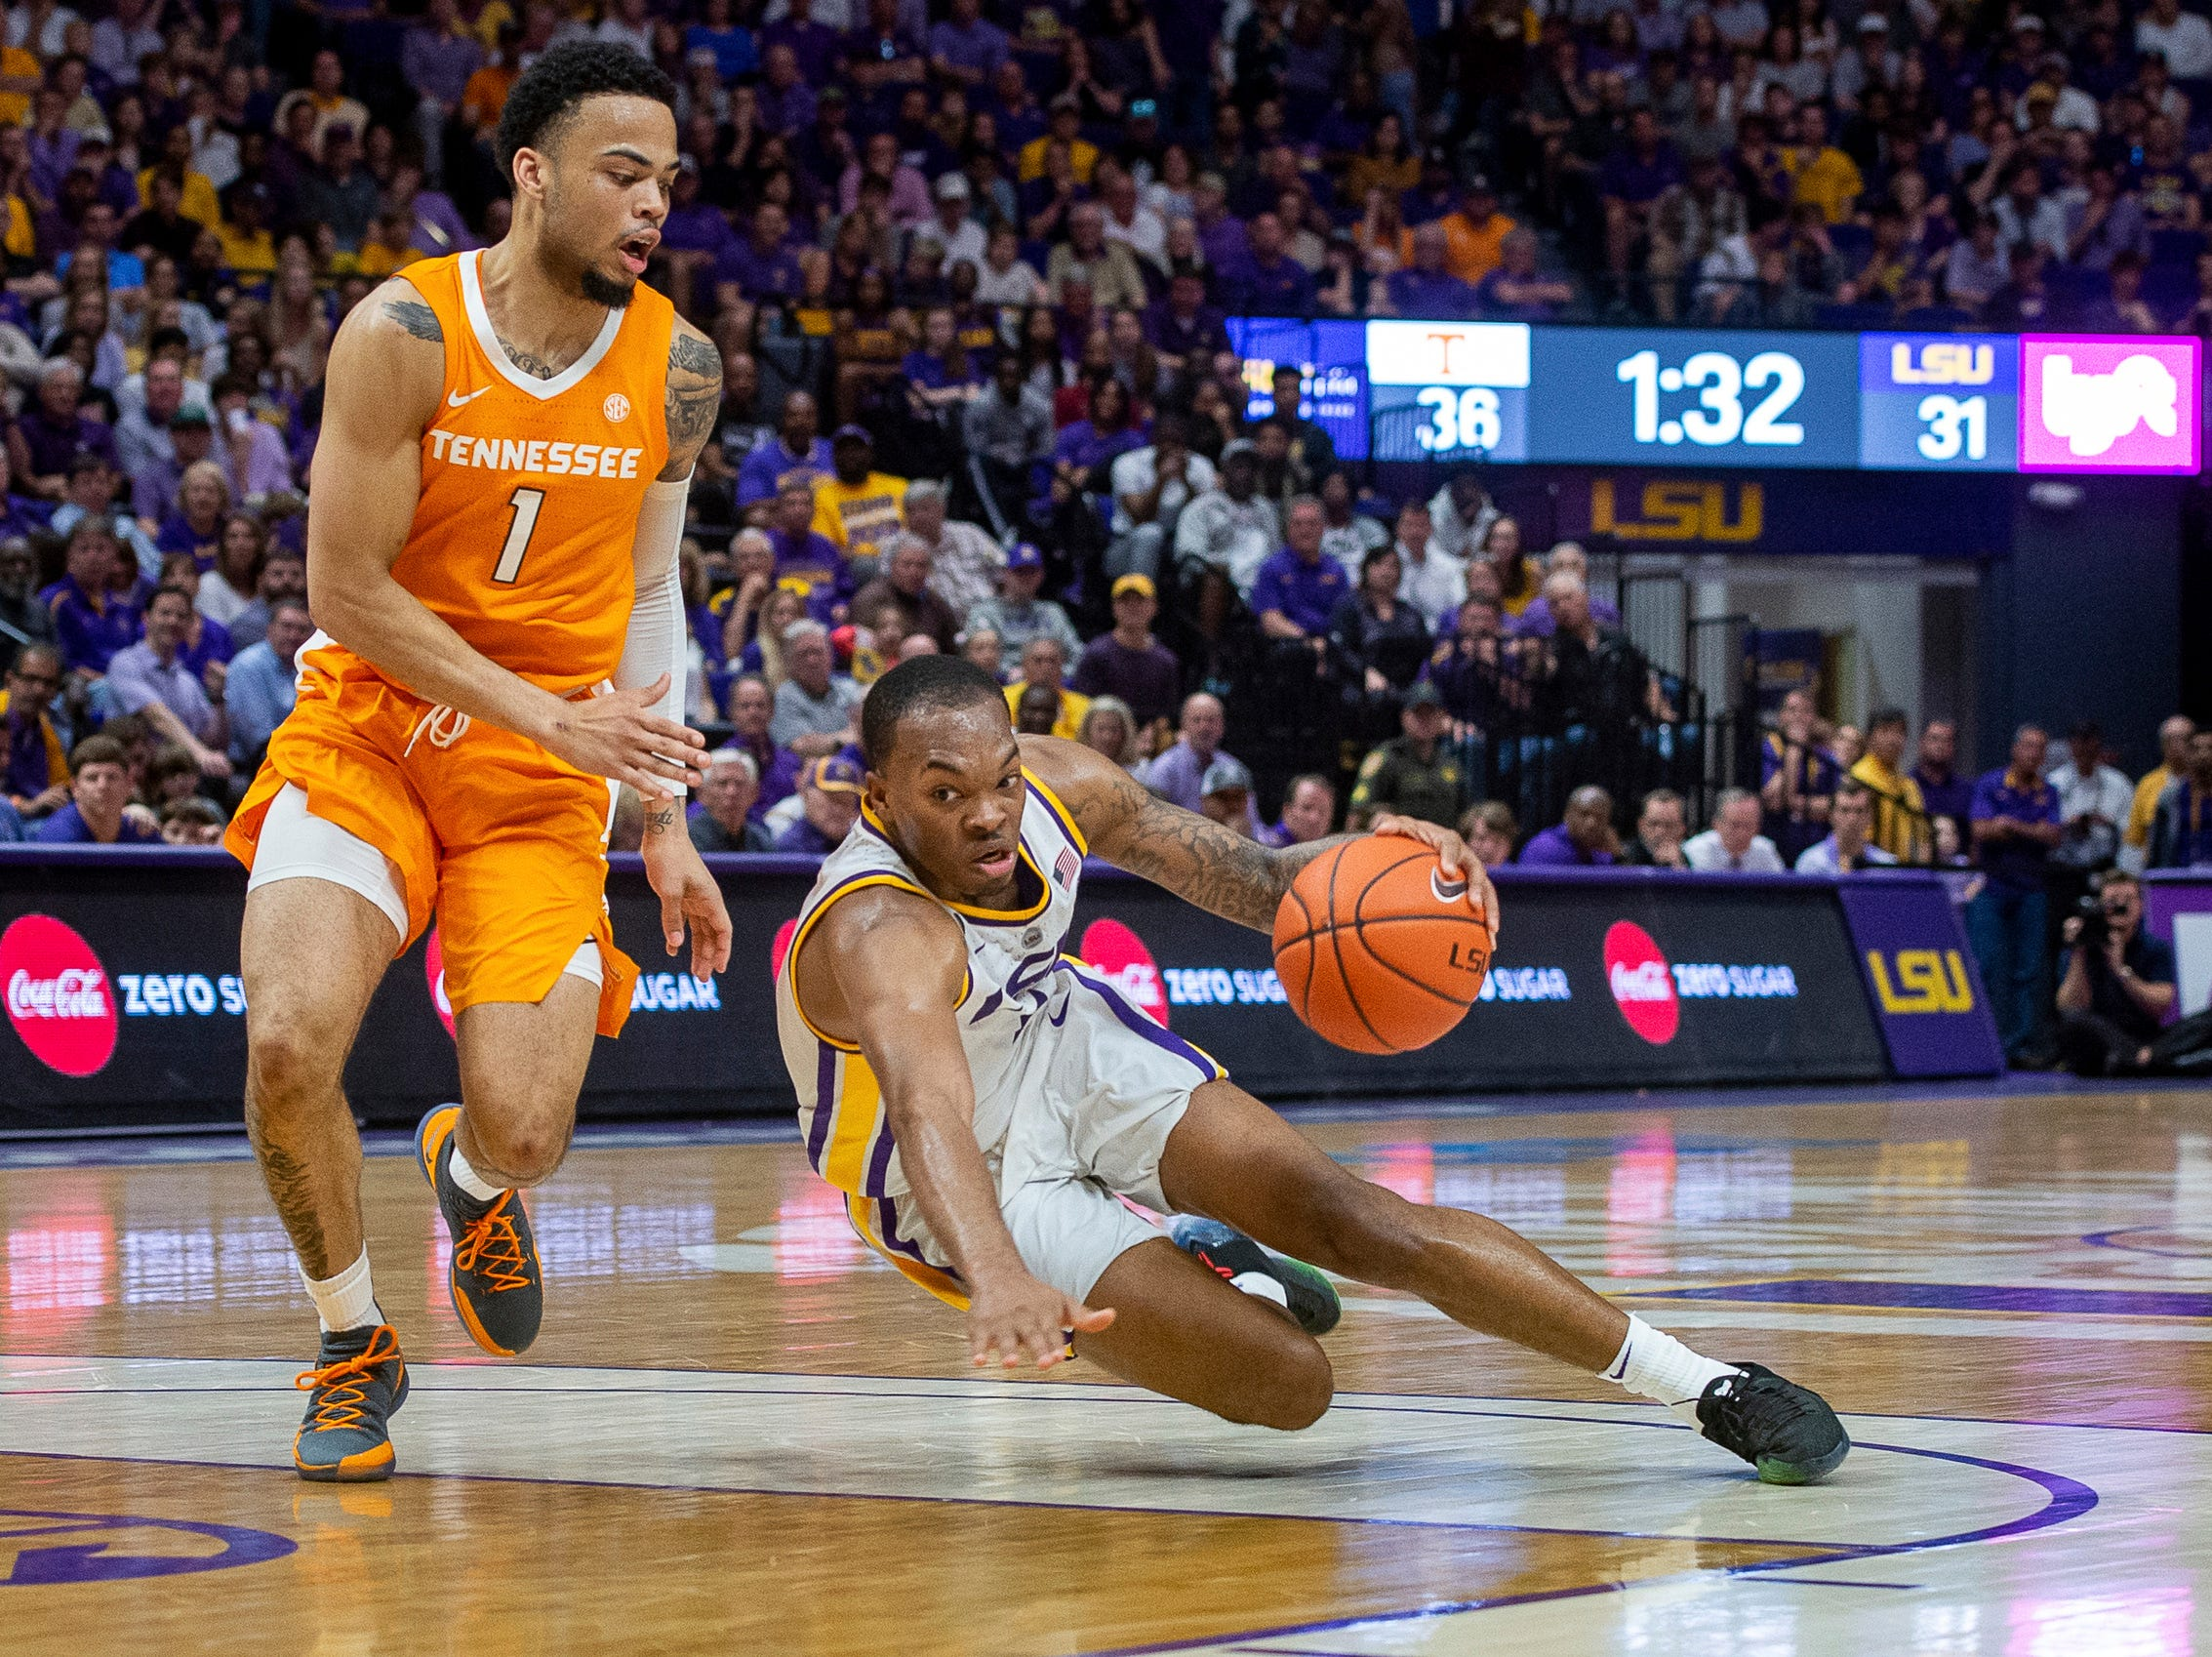 LSU's Javonte Smart, right, falls while driving to the basket past Tennessee's Lamonte' Turner during an NCAA college basketball game, Saturday, Feb. 23, 2019, in Baton Rouge, La. (Scott Clause/The Daily Advertiser via AP)